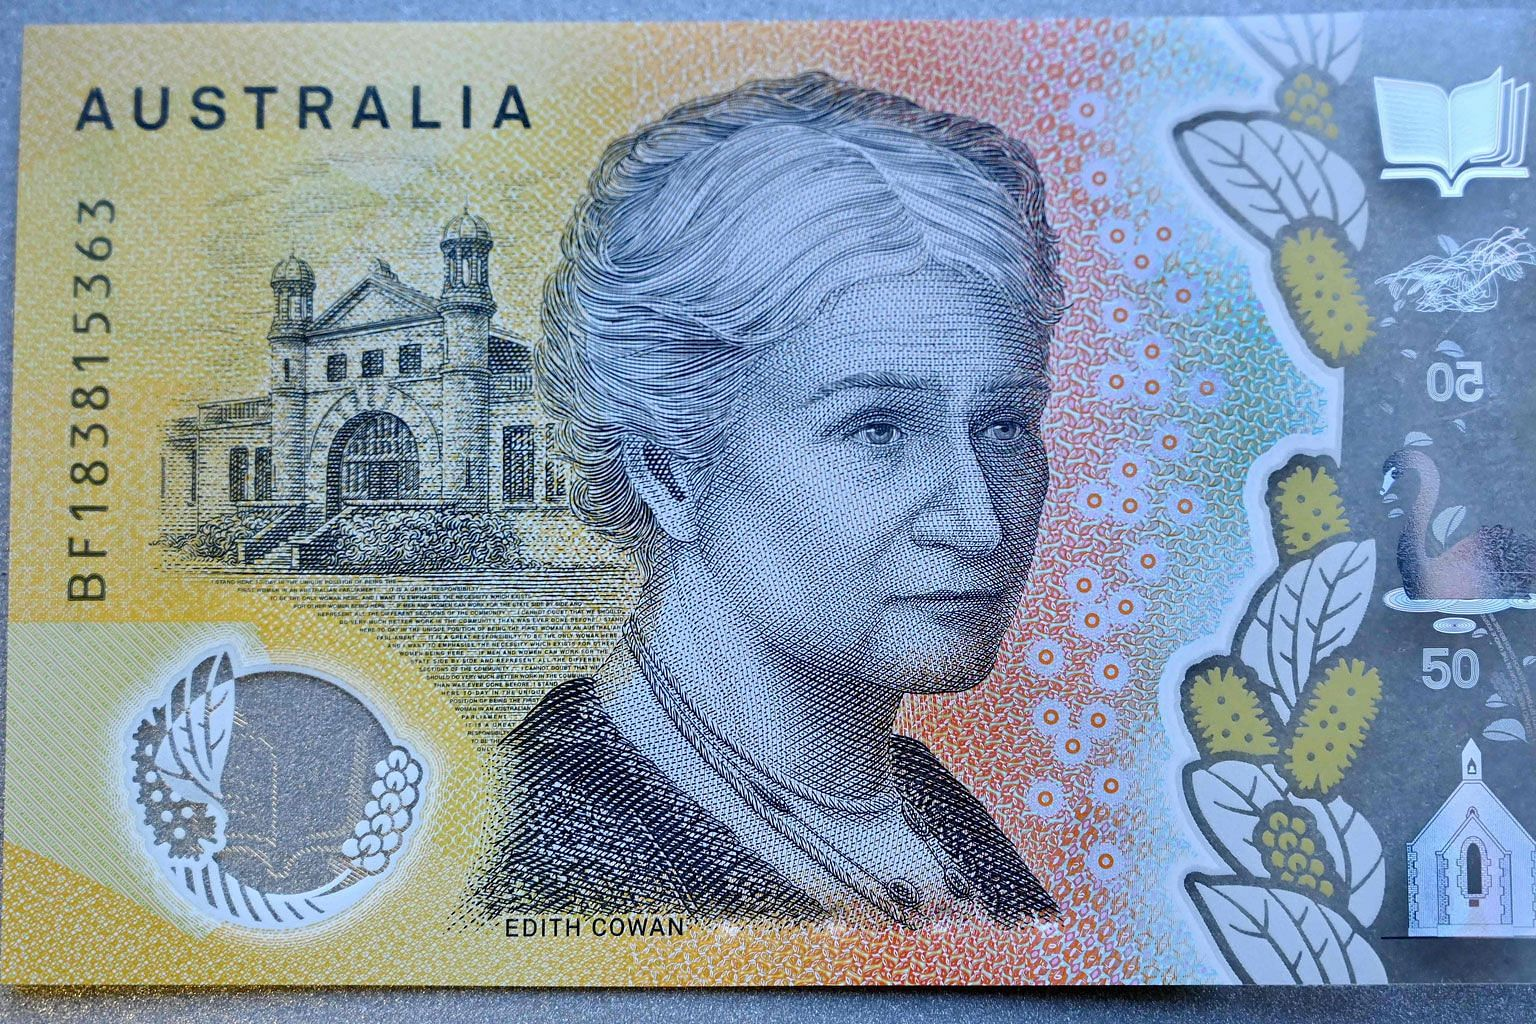 Australia's new $50 banknote. A central bank spokesman said the error will be corrected at the next print run.